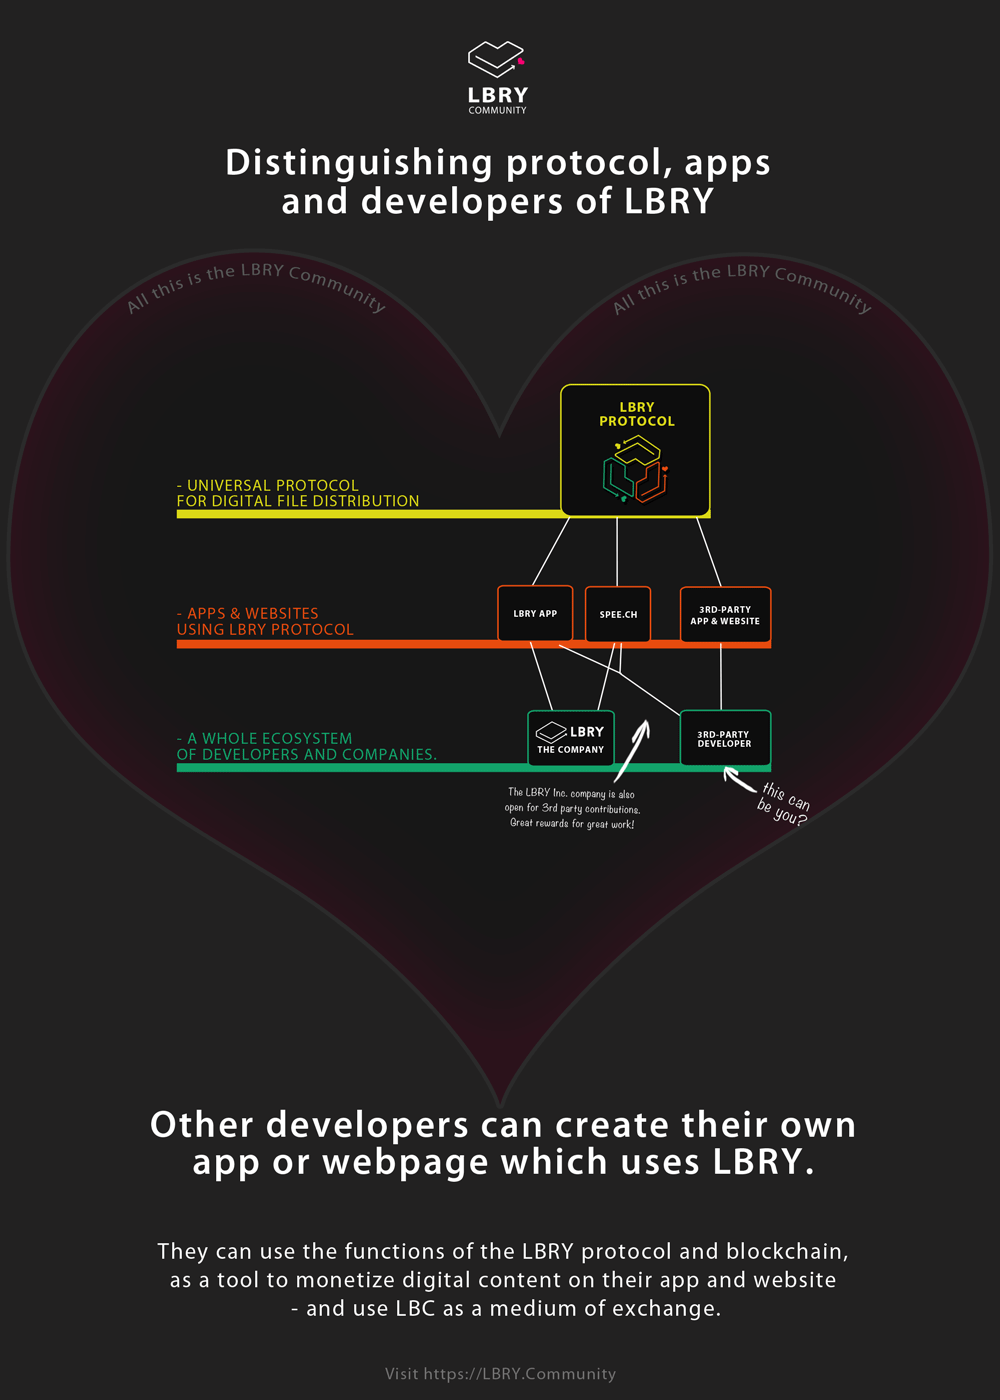 Distinguishing protocol, apps and developers of LBRY